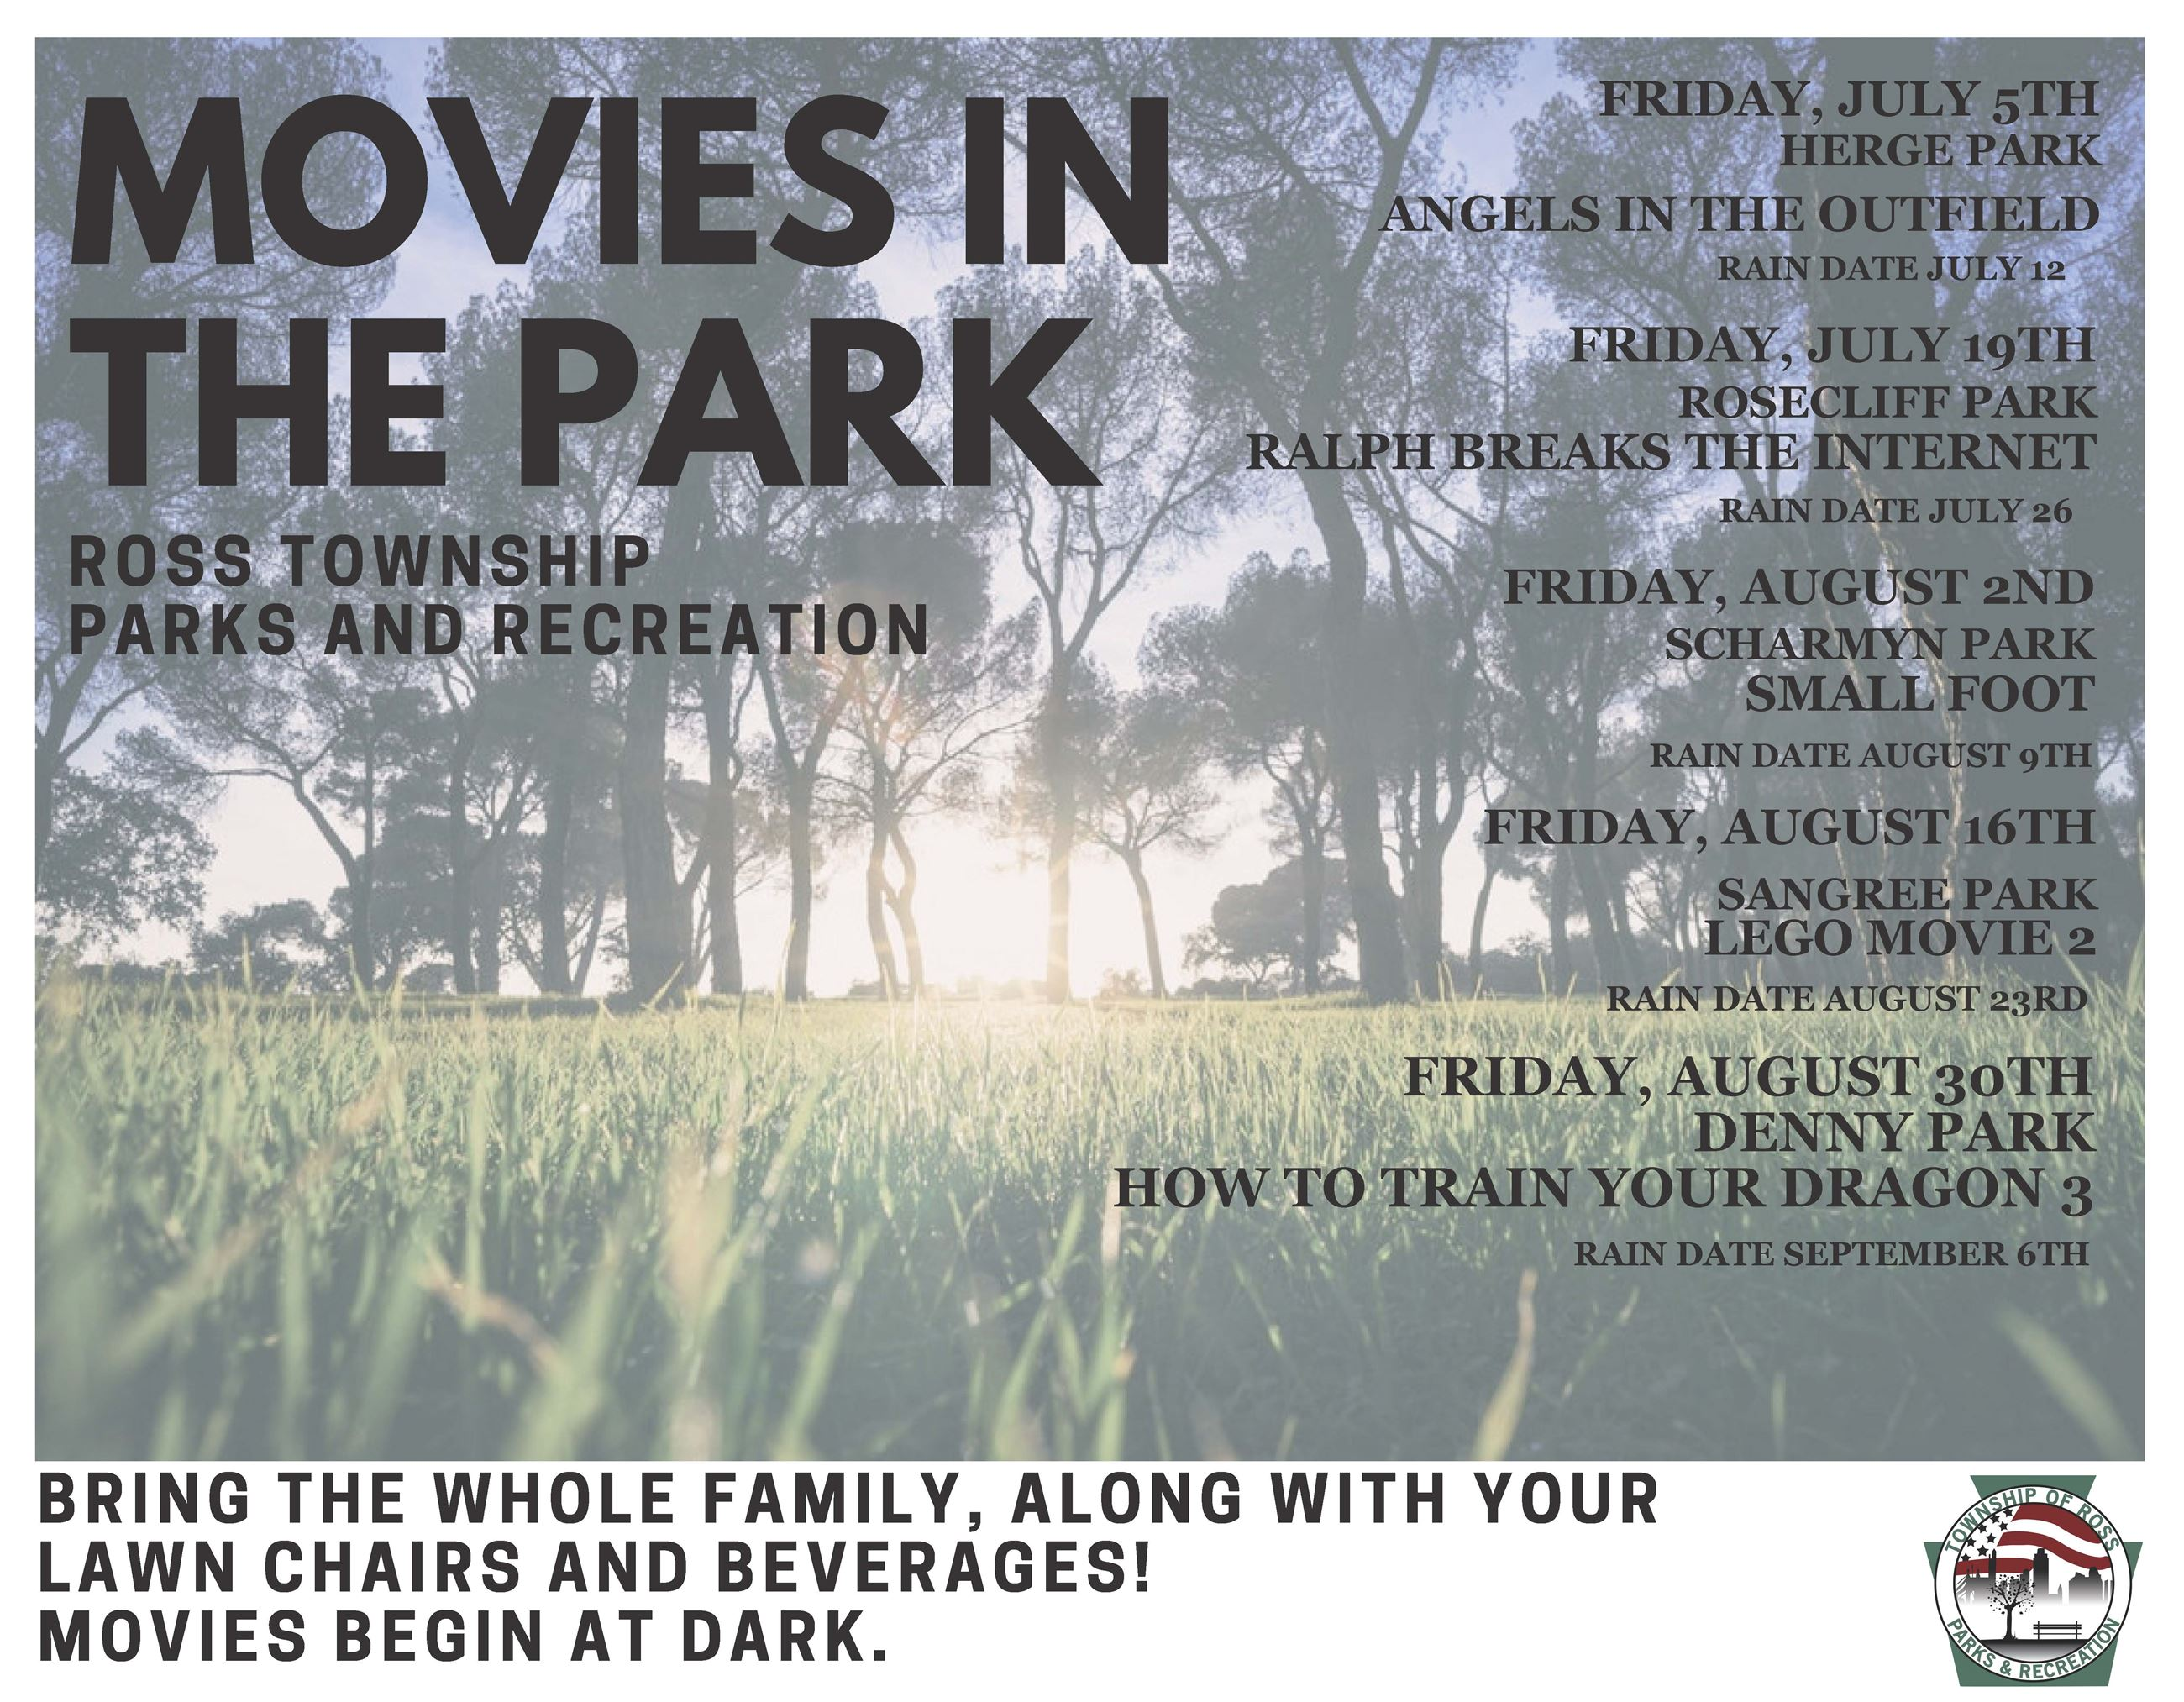 Movies in the Park Flyer 2019 Opens in new window